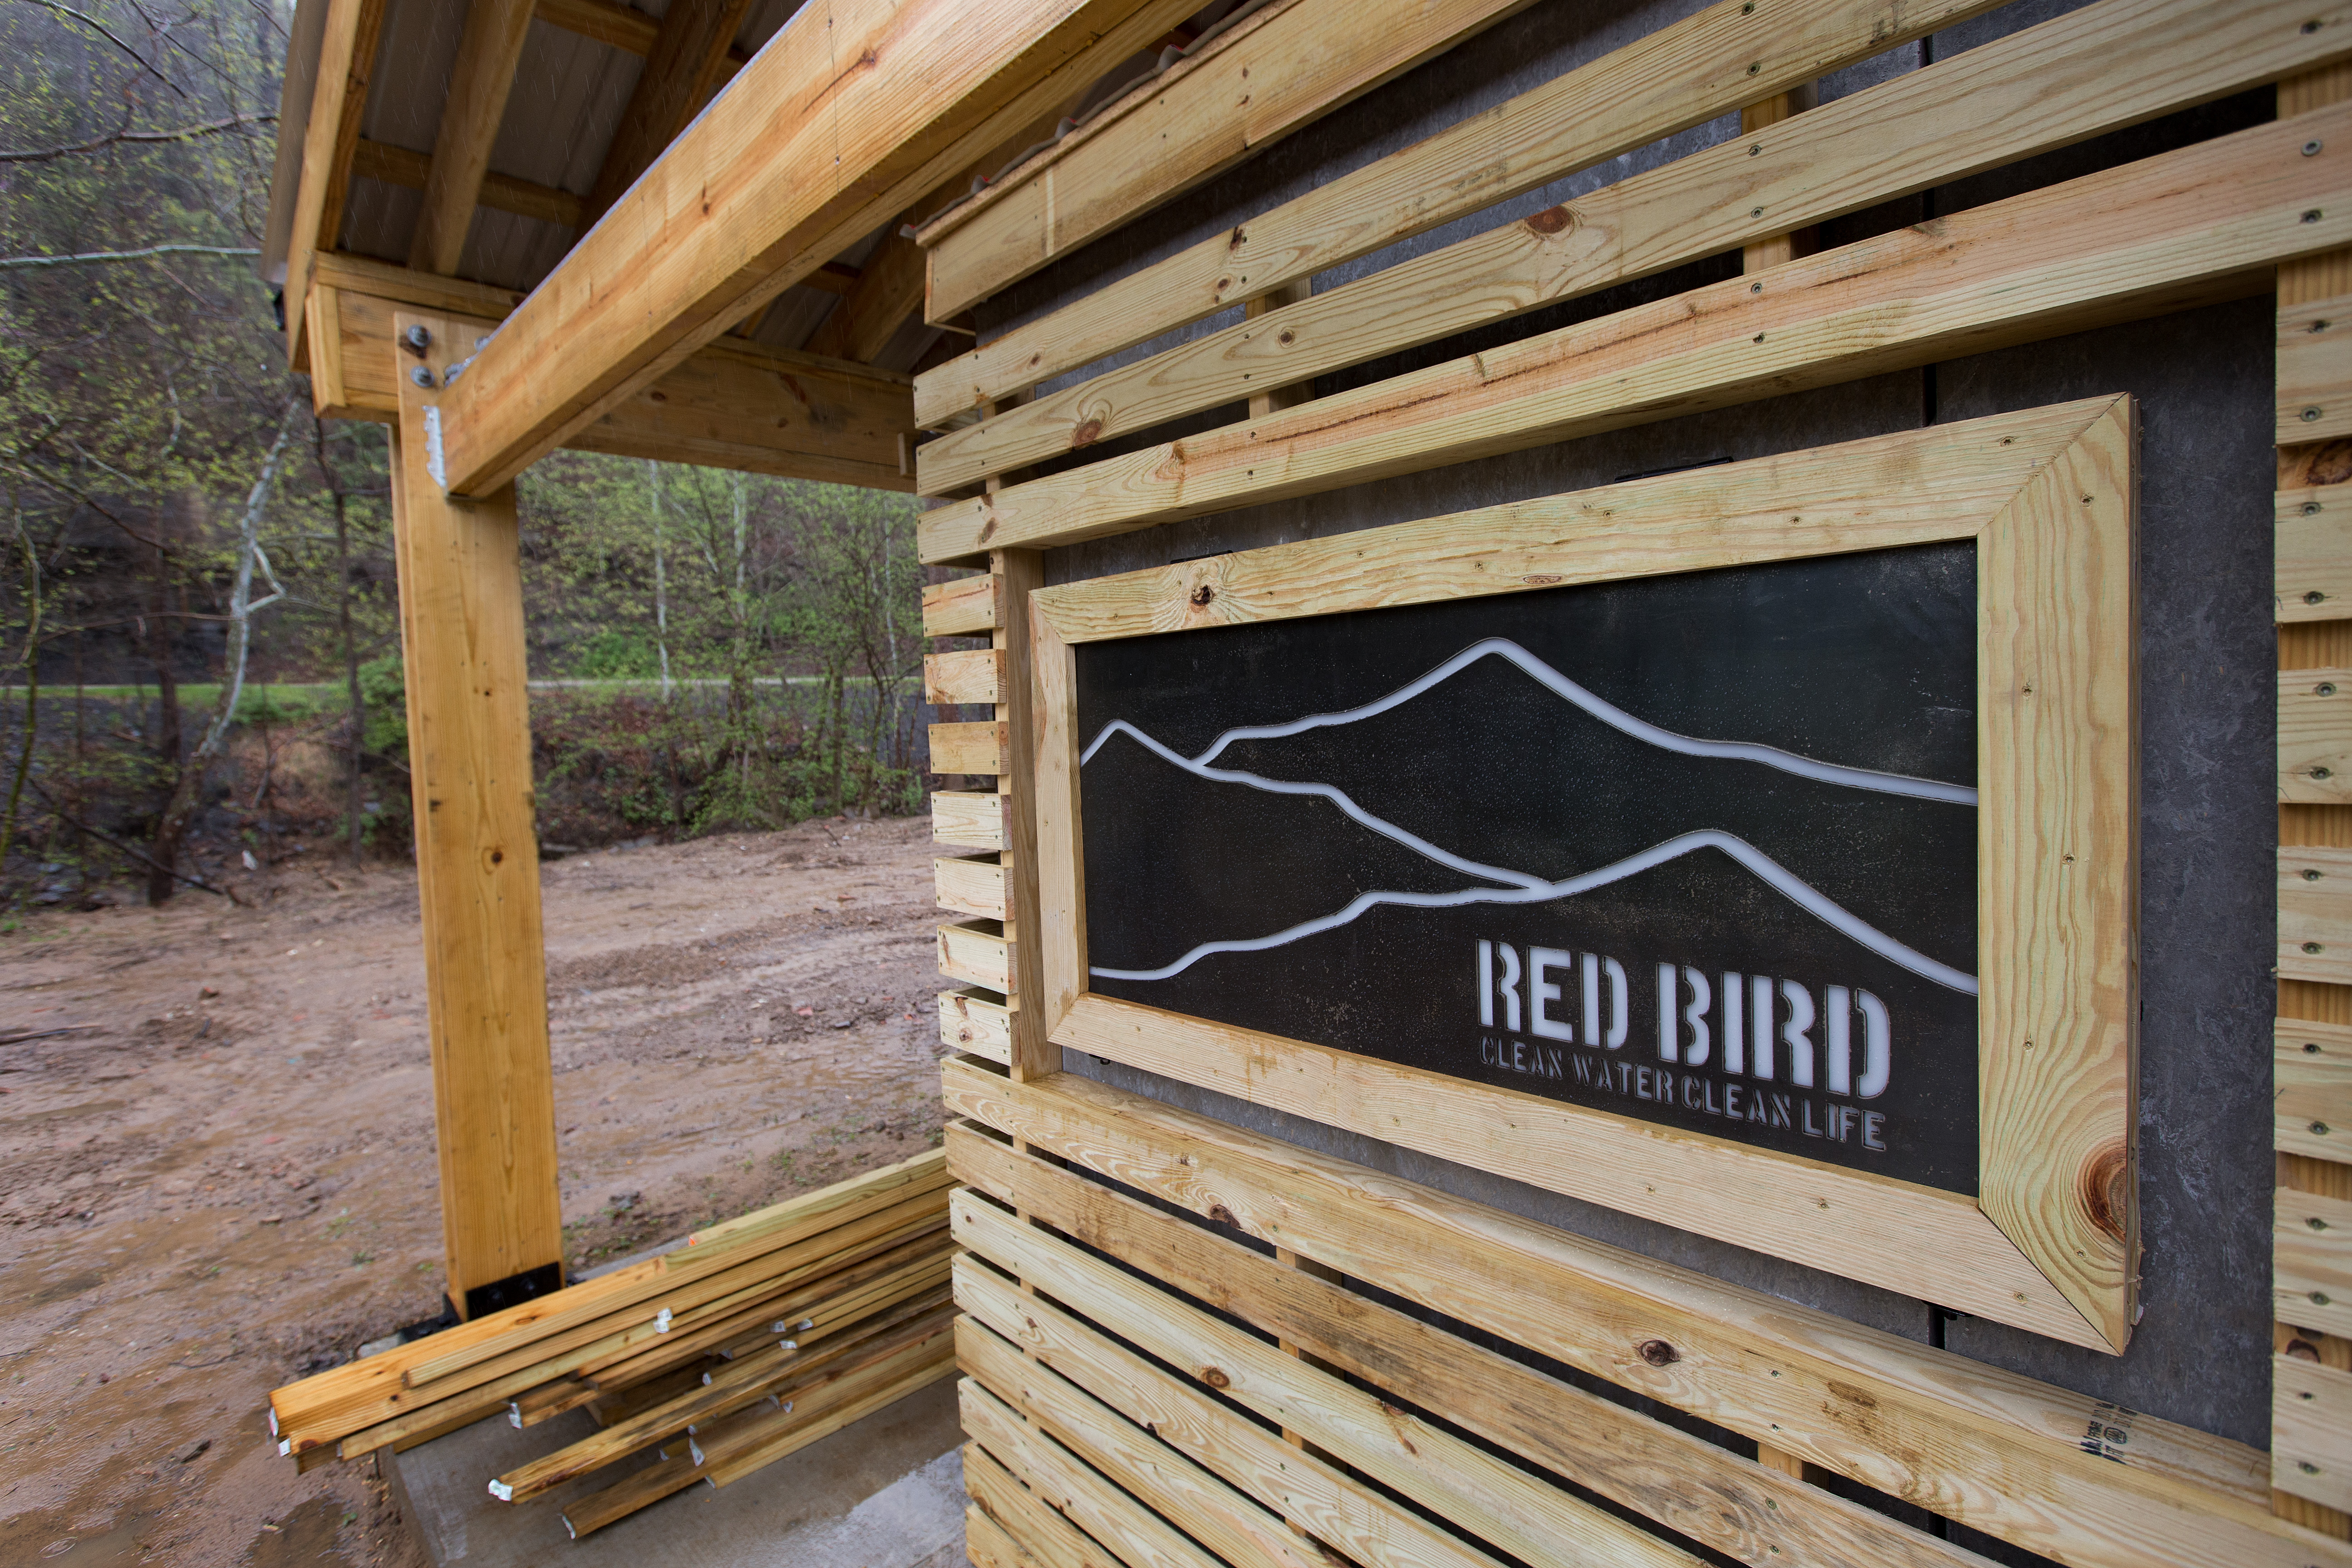 Clean drinking water will be dispensed from this kiosk at the Red Bird Missionary Conference in Beverly, Ky., when the project is completed this summer. Photo by Mike DuBose, UMNS